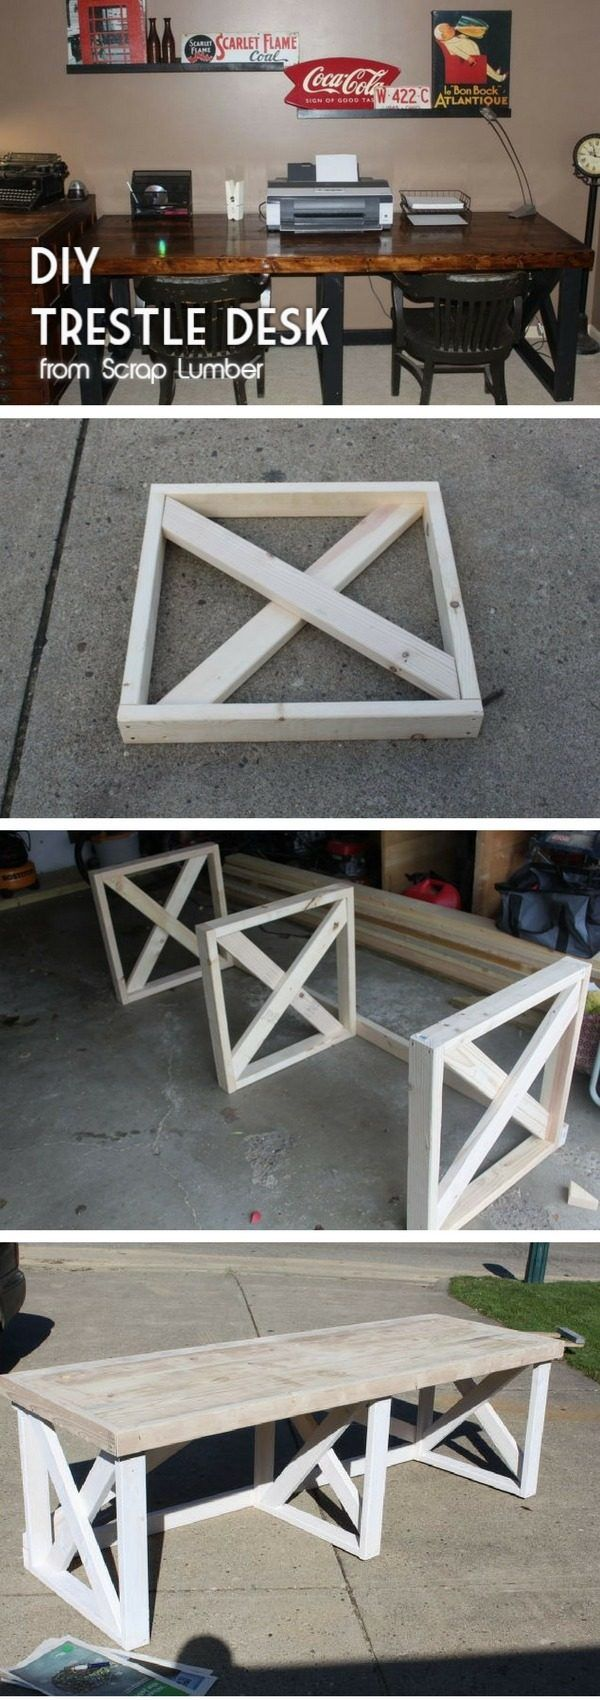 Check out the tutorial how to build a DIY trestle desk from scrap wood @istandarddesign